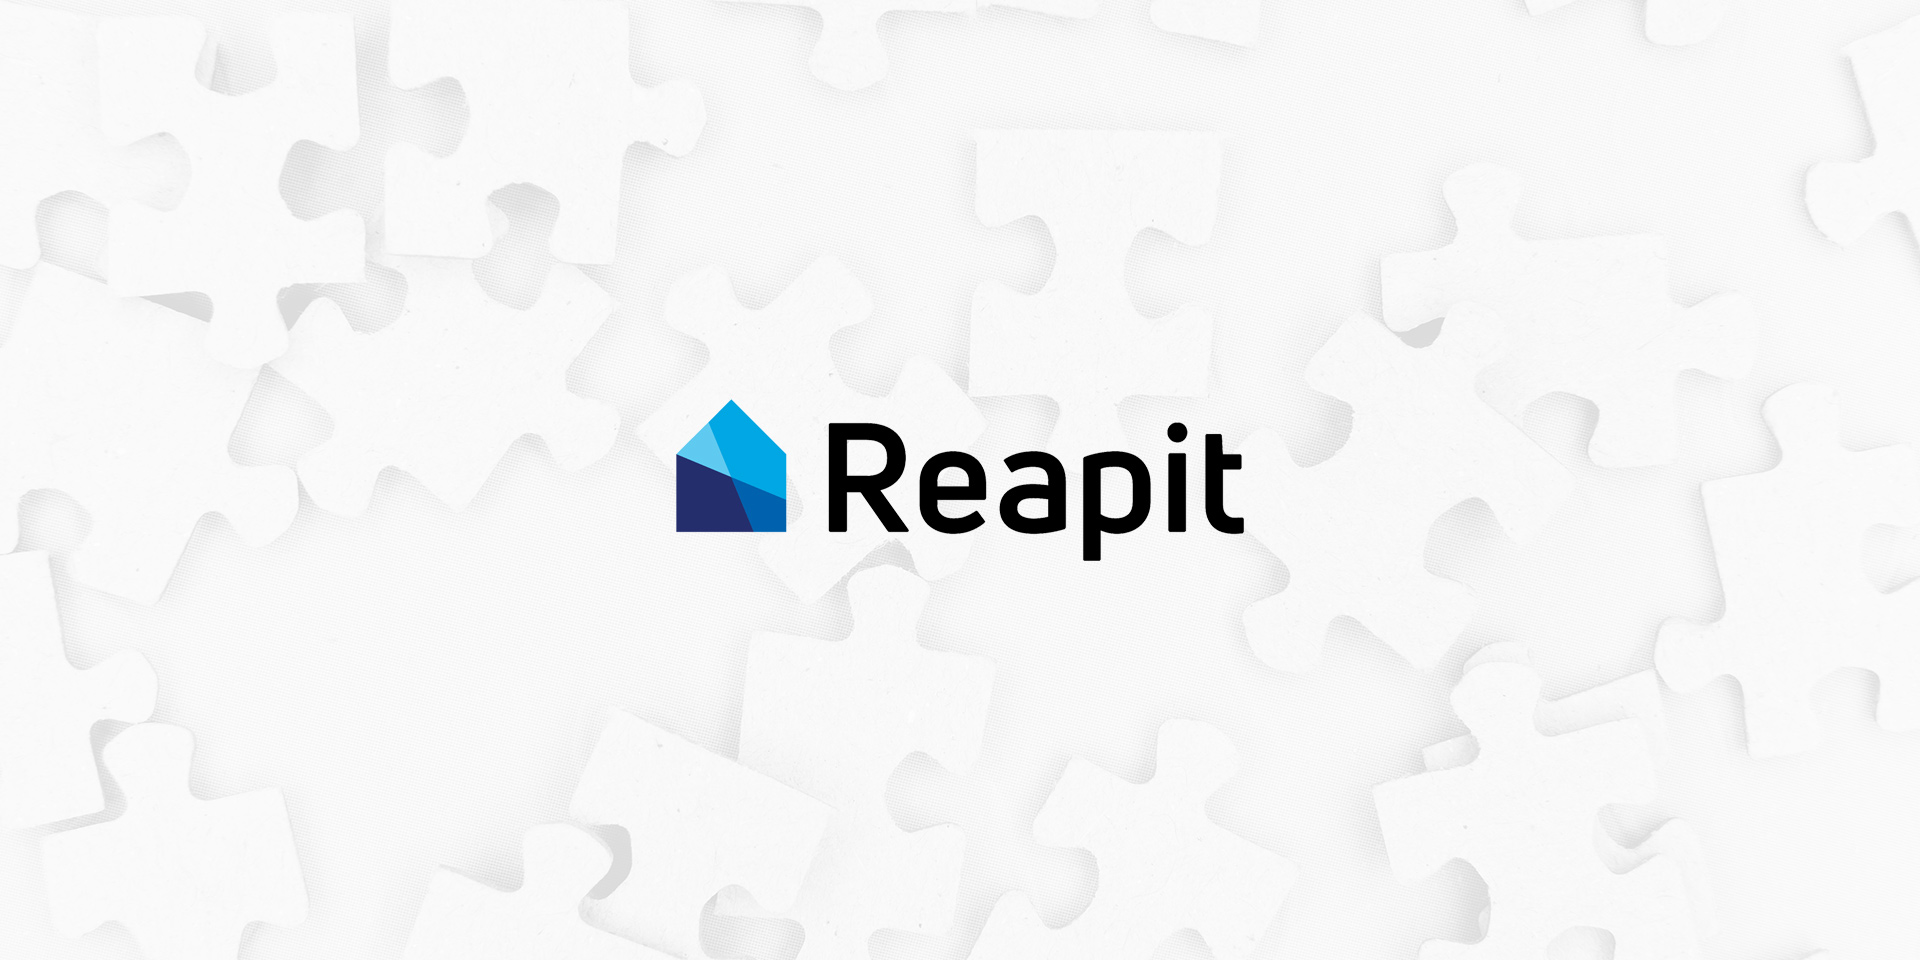 Fixflo and Reapit - new integration annouced